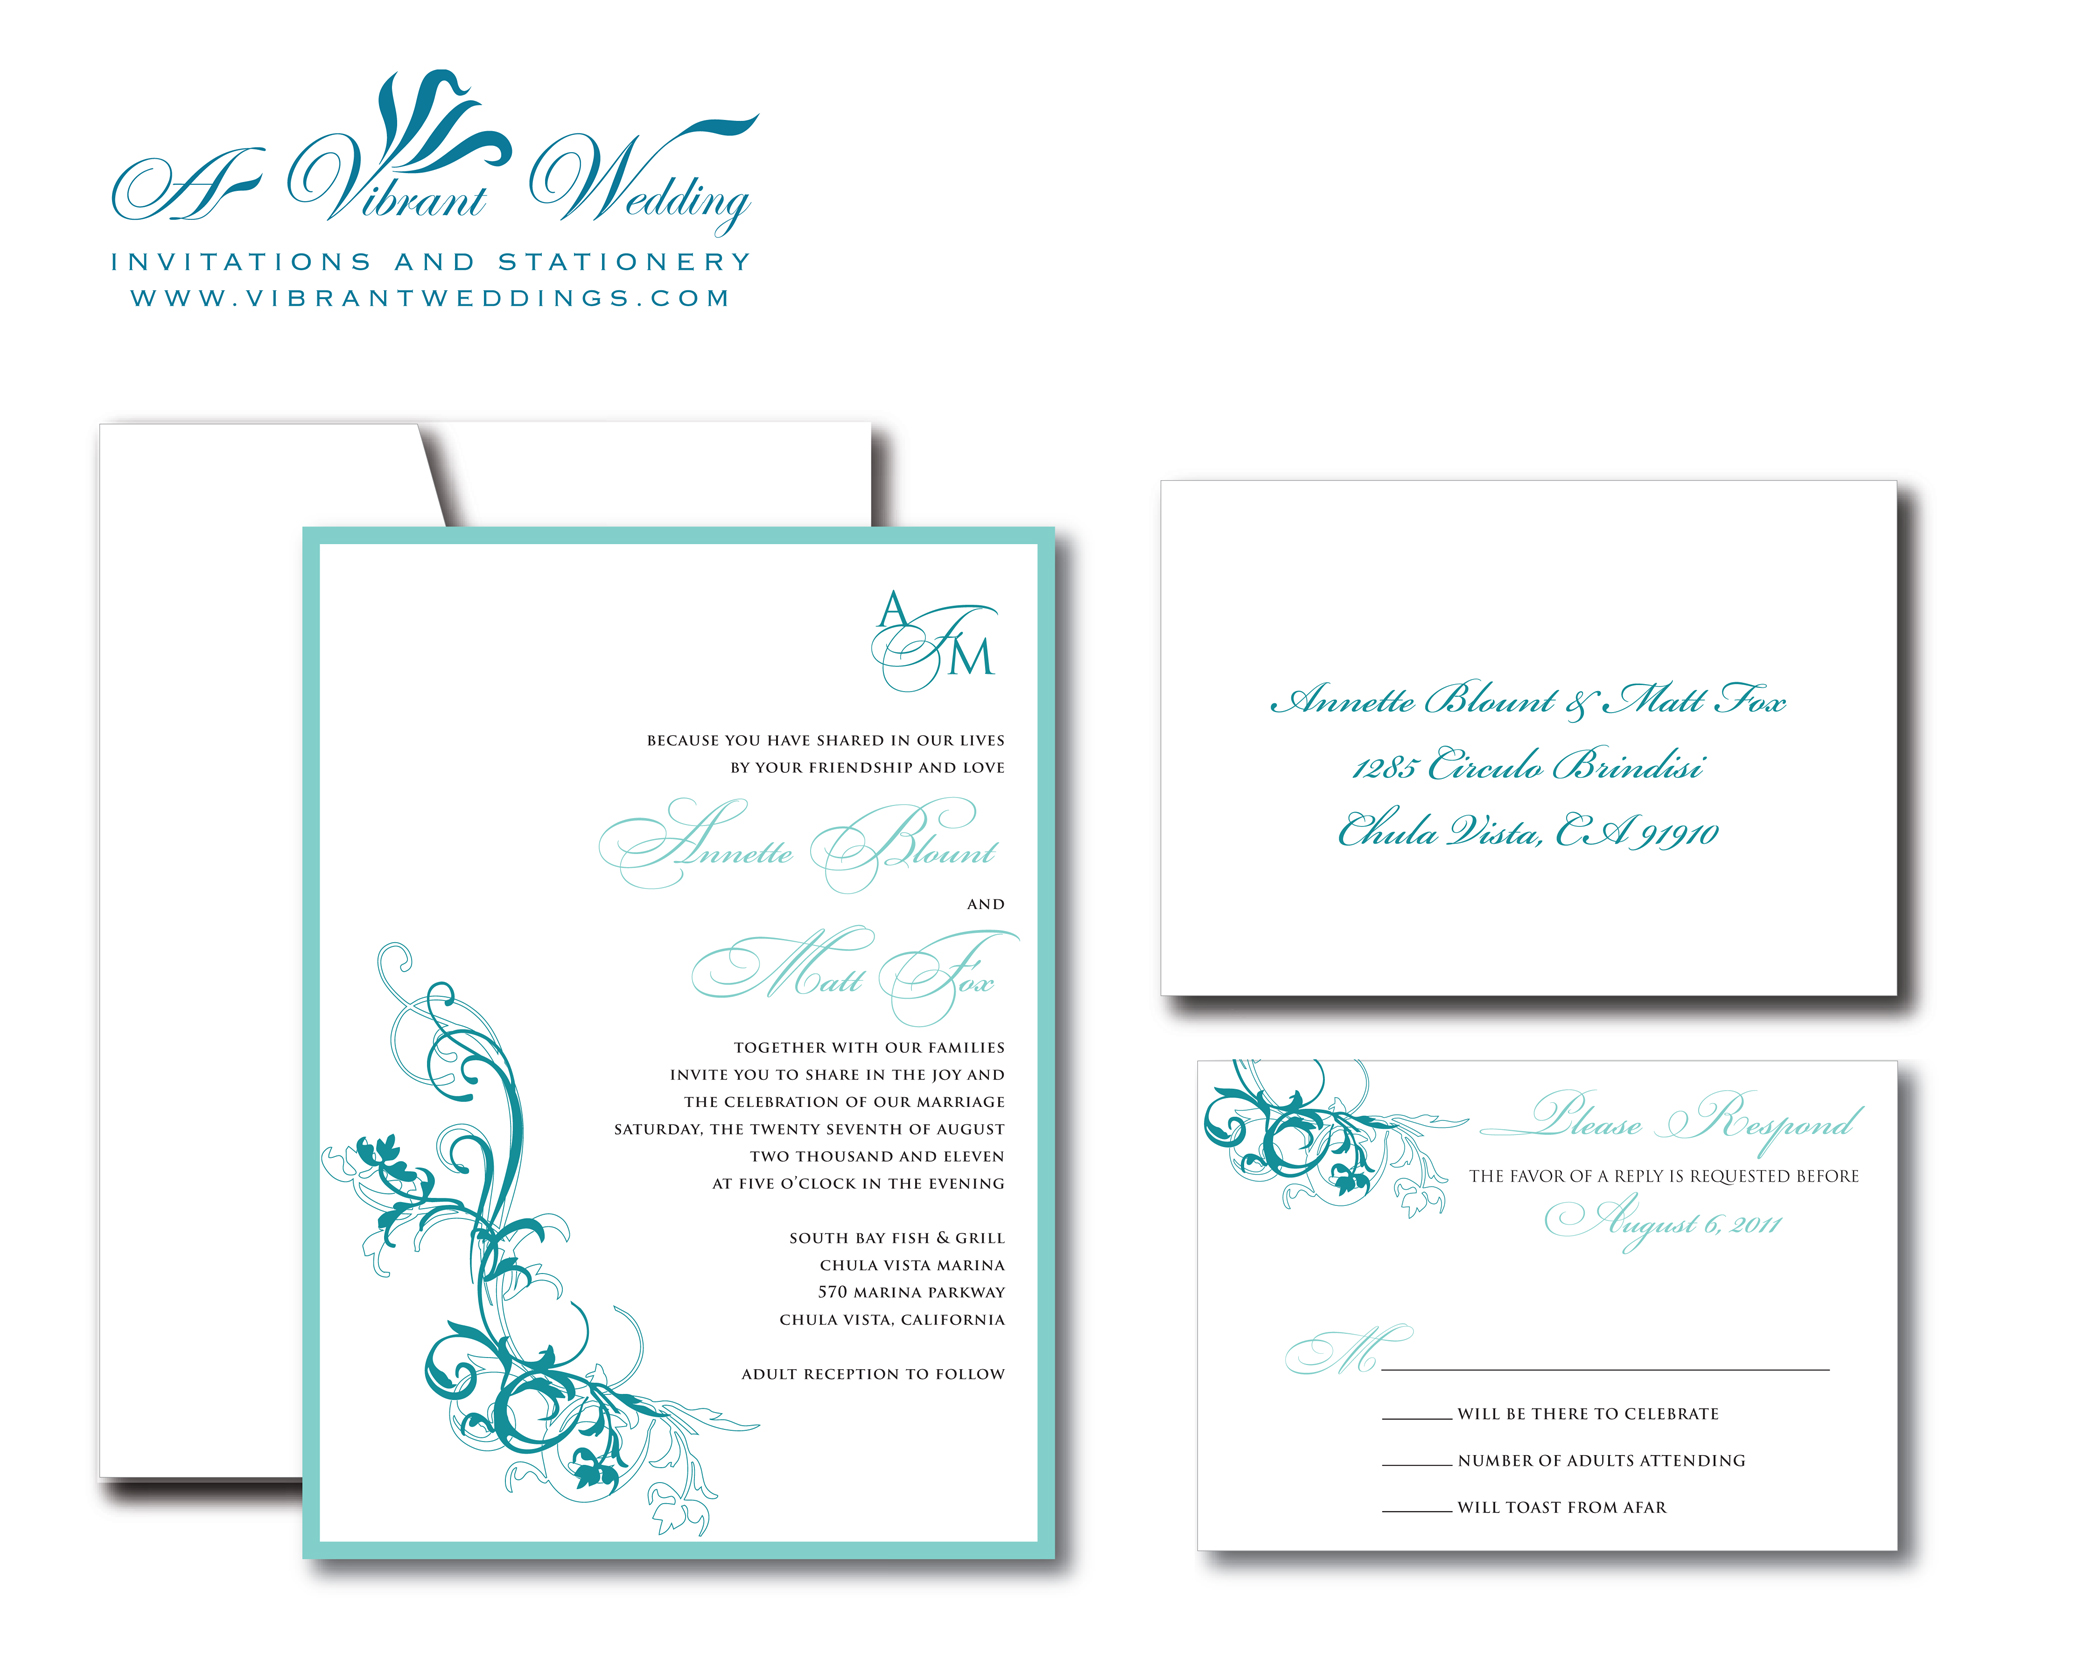 Turquoise wedding invitation – A Vibrant Wedding